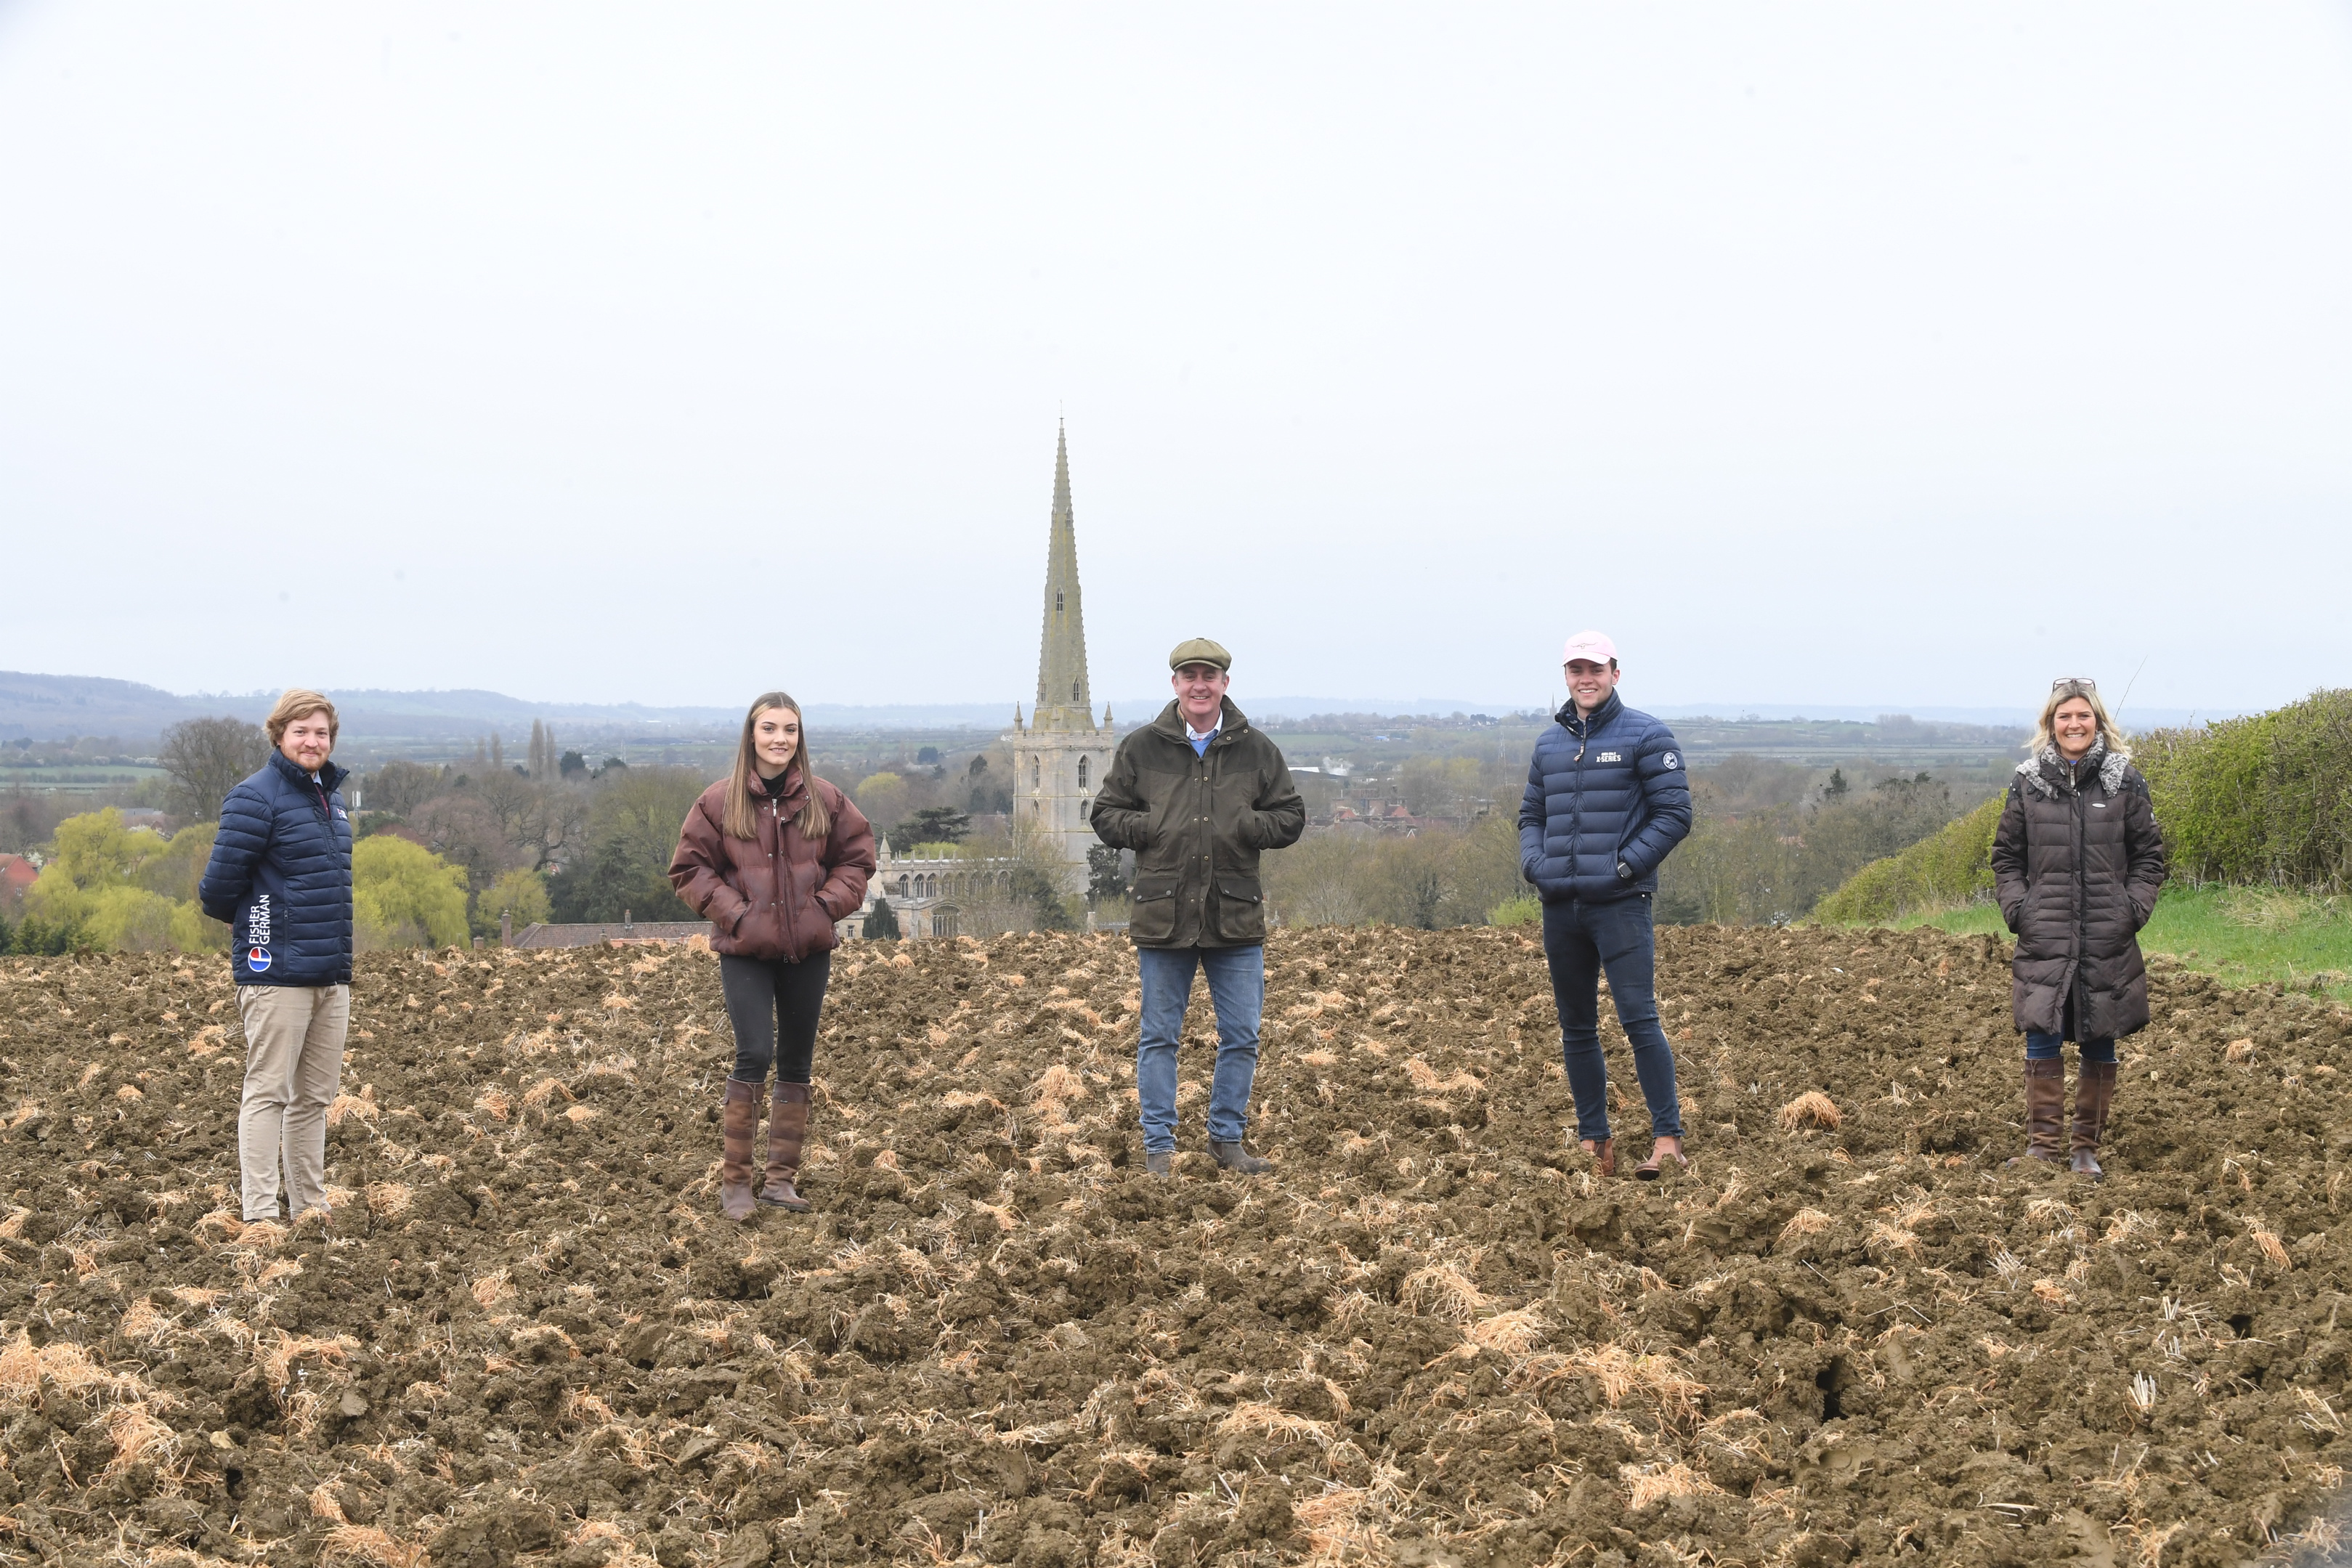 Family-run Leicestershire farm receives planning permission for natural burial ground